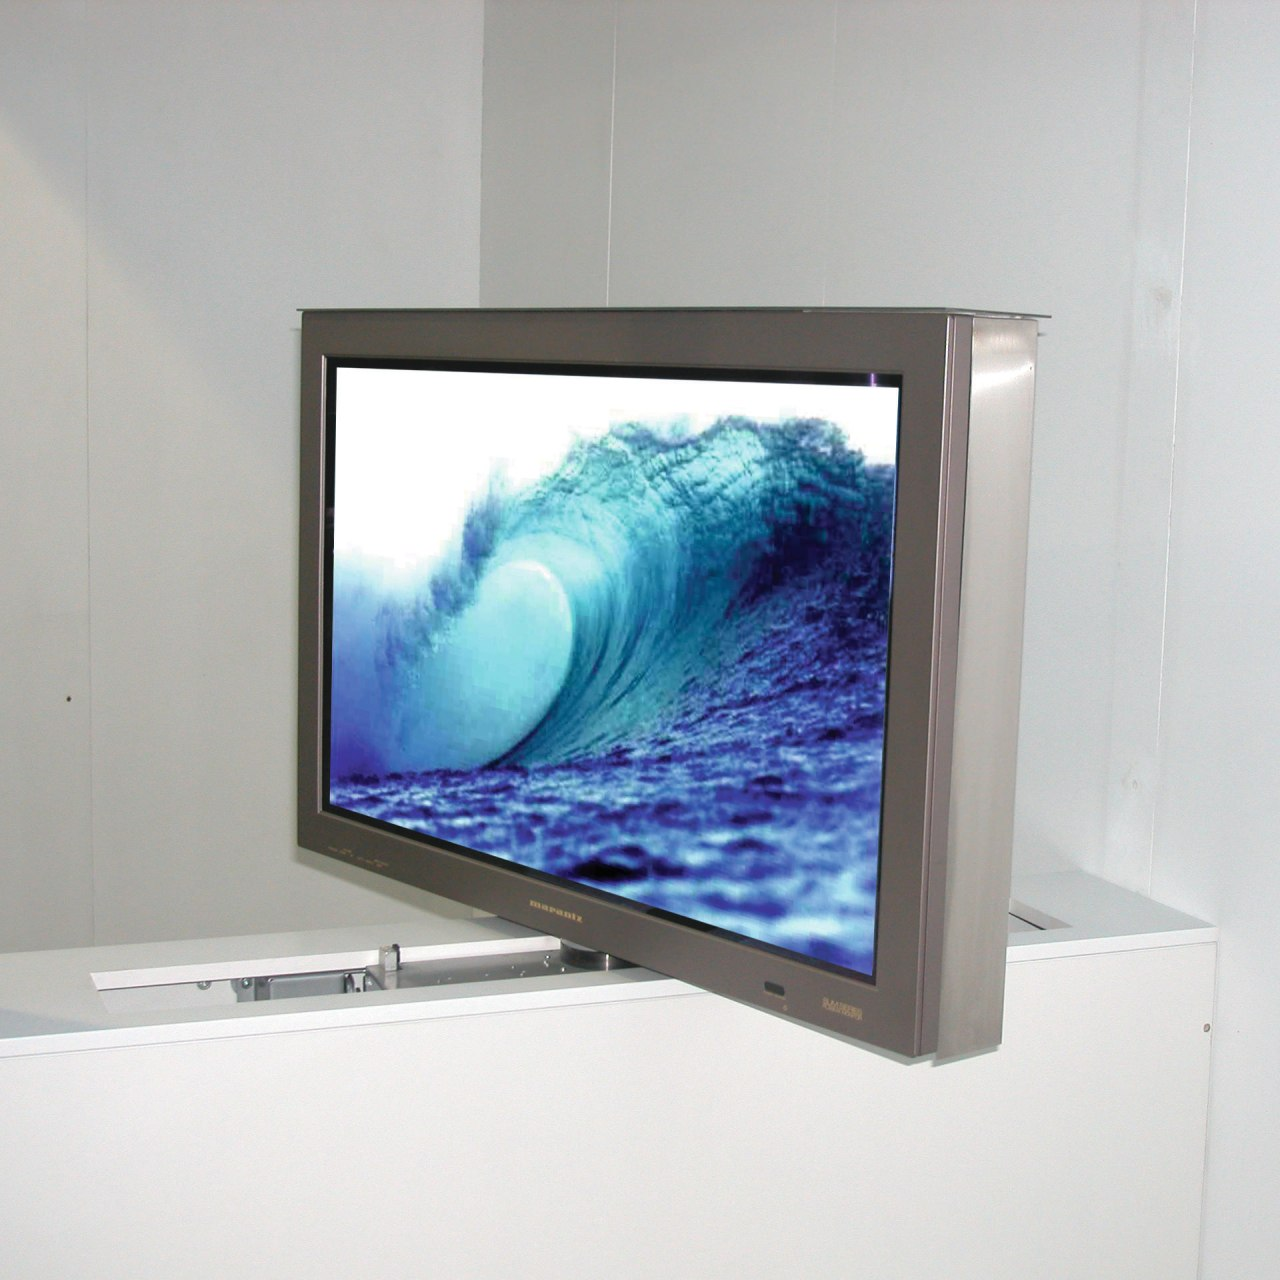 View of entertainment computer monitor, display device, flat panel display, glass, lcd tv, led backlit lcd display, media, multimedia, product design, screen, technology, television, television set, white